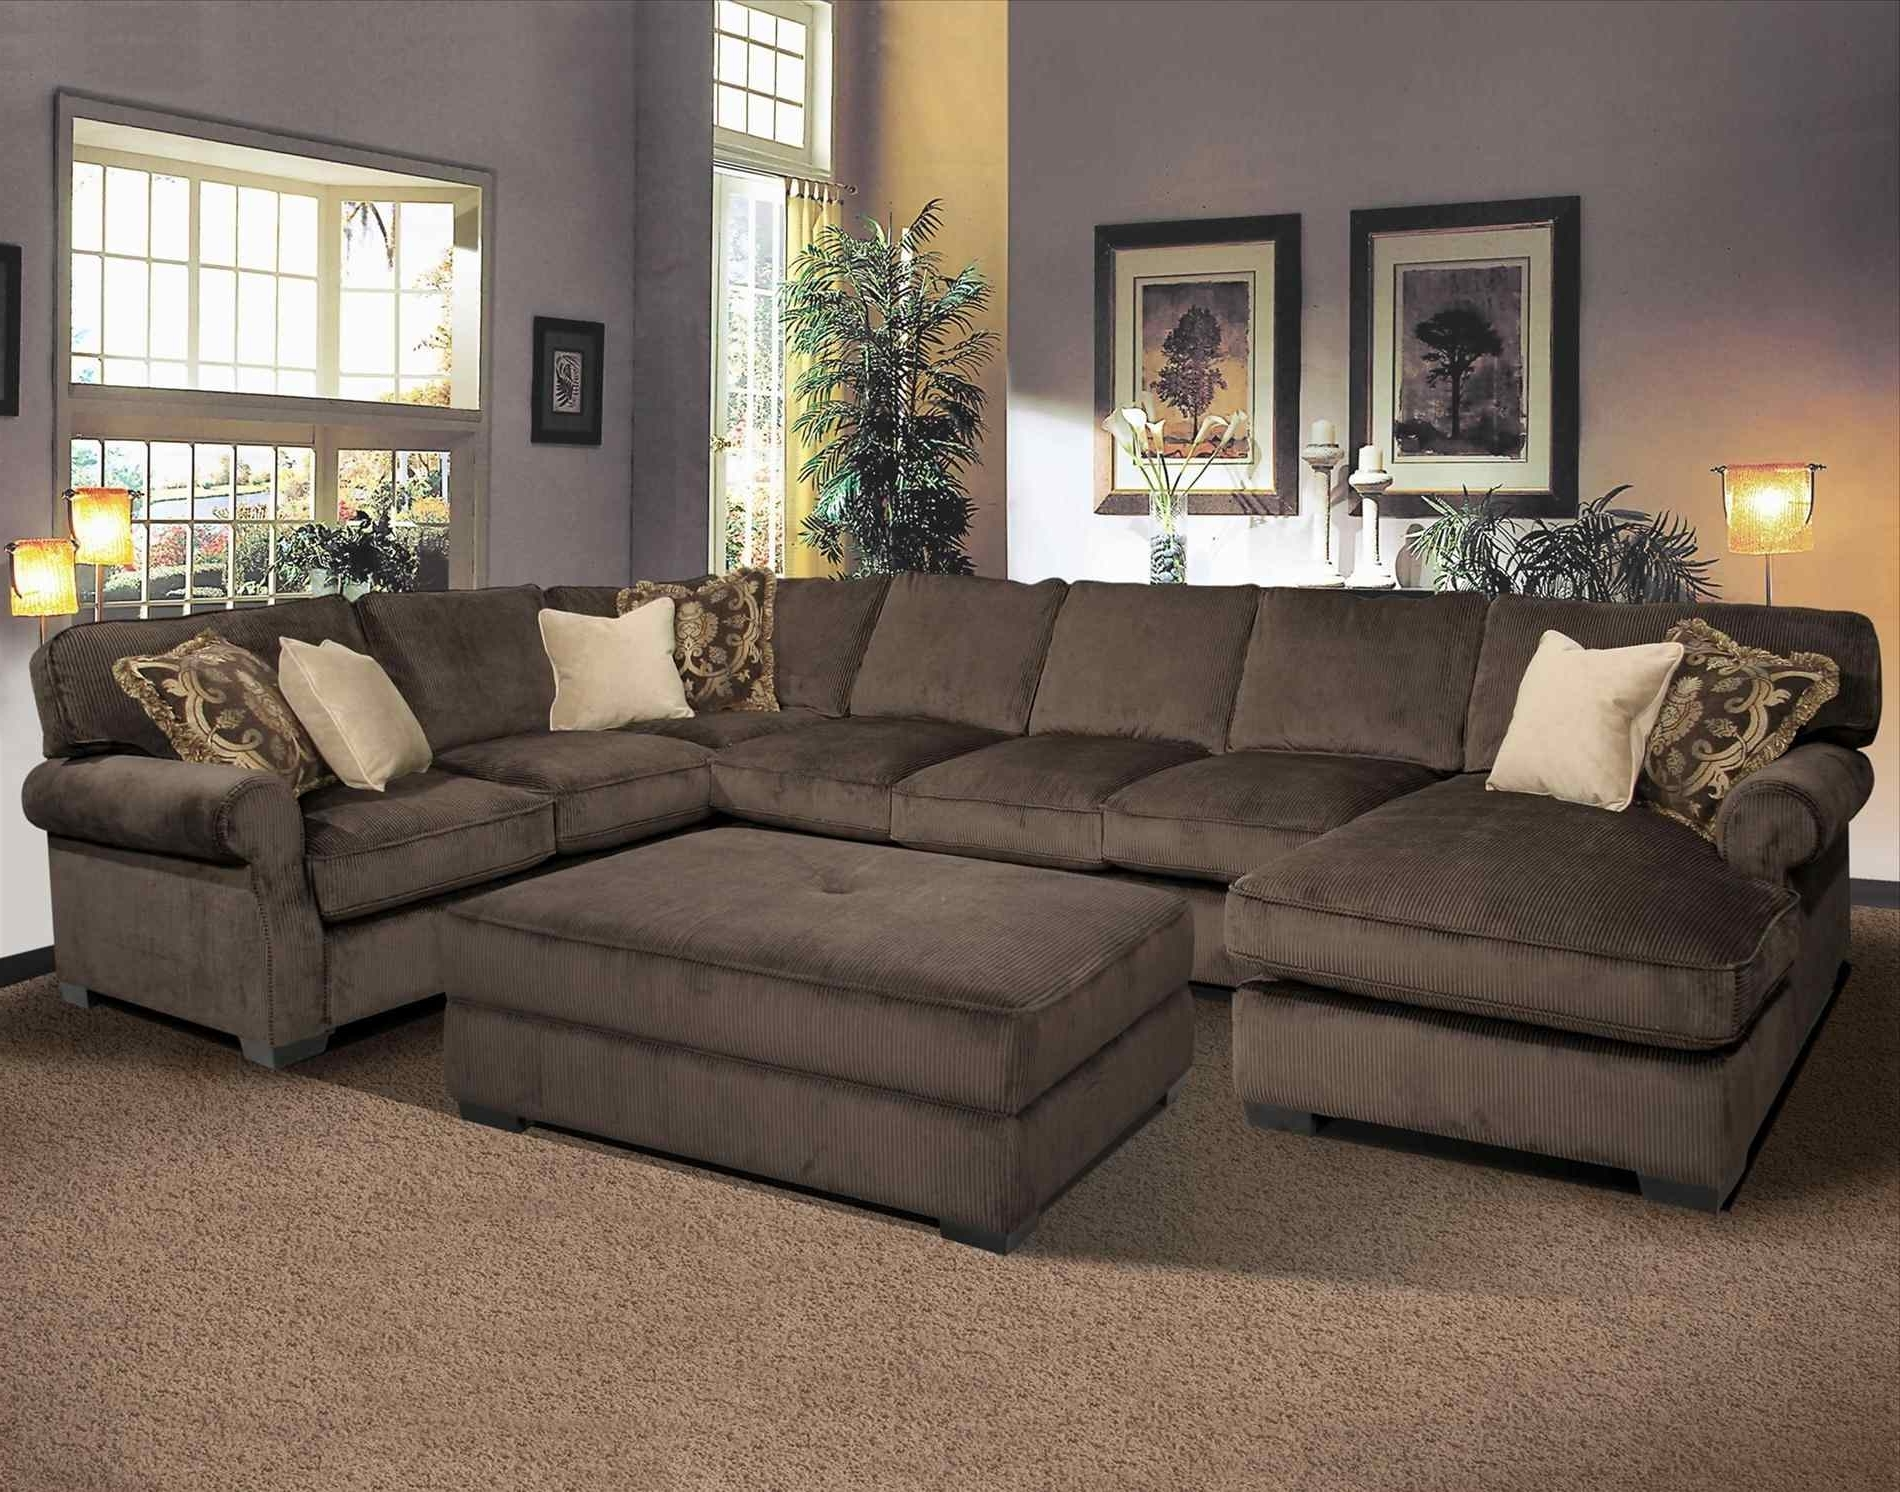 Large U Shaped Sectionals Intended For Most Recently Released Sofa : Options Large U Shaped Sofa Set Designs Scale Sectional (View 7 of 15)